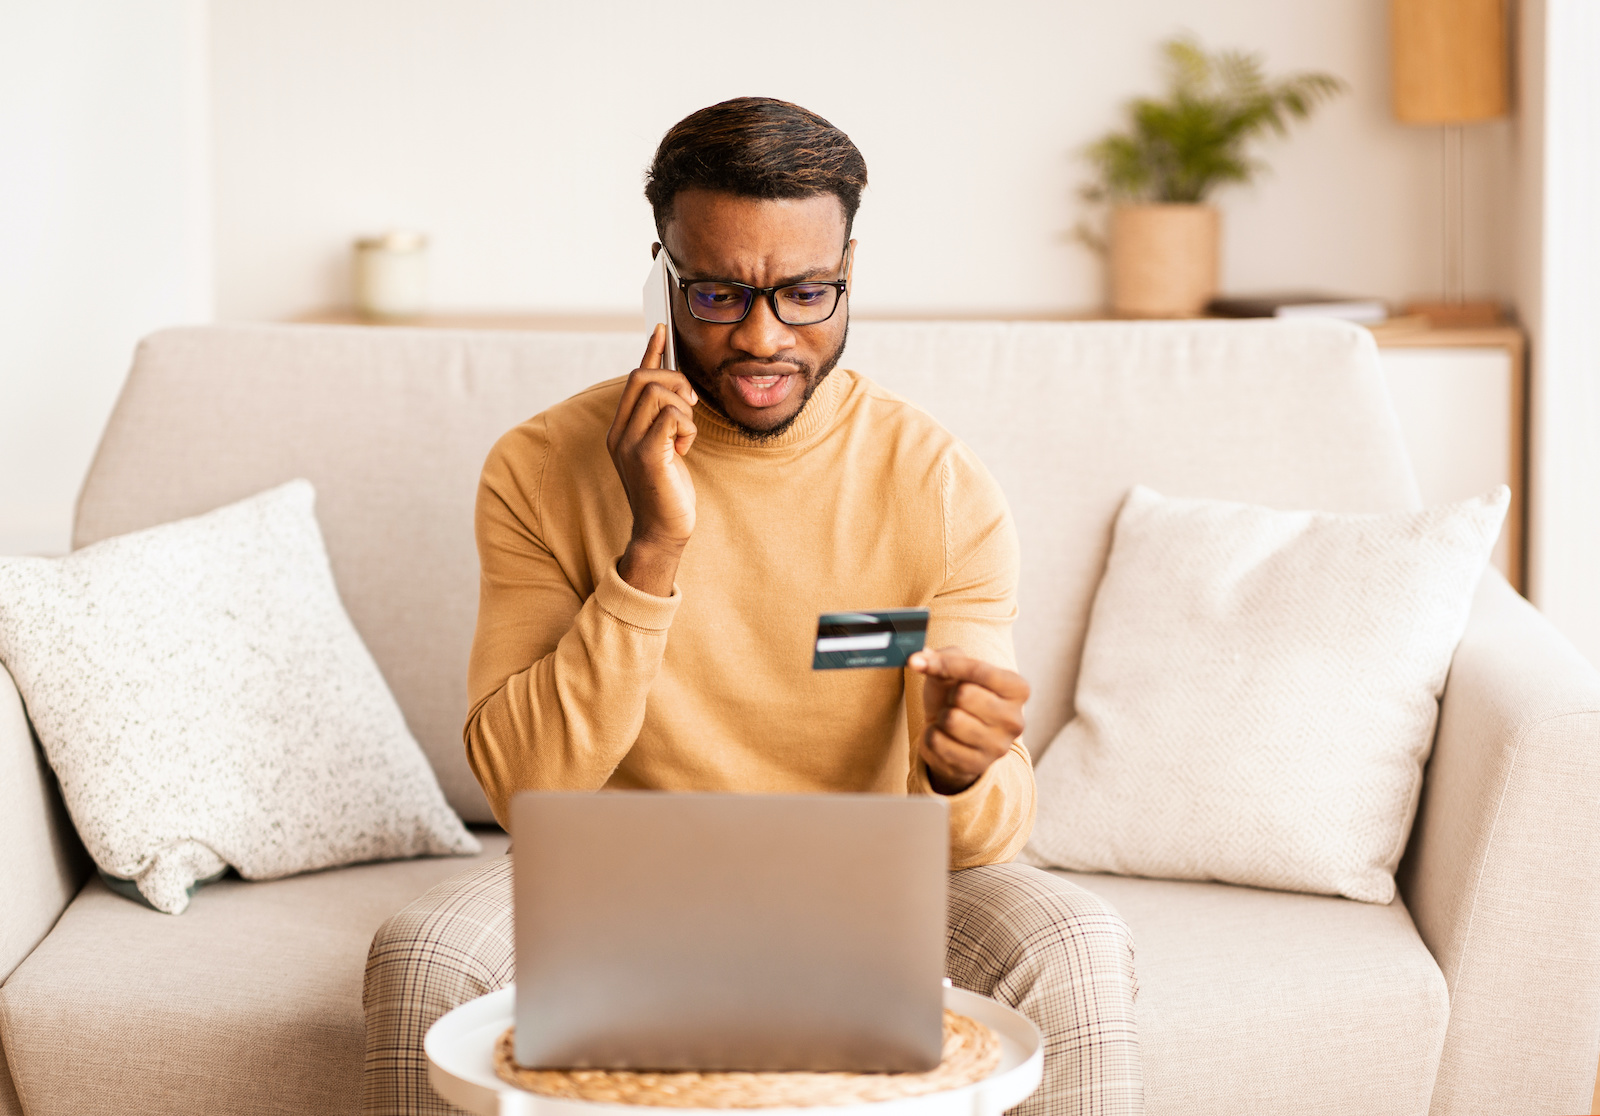 Credit card debt relief: A man holds his credit card, looks at his laptop screen, and talks on the phone